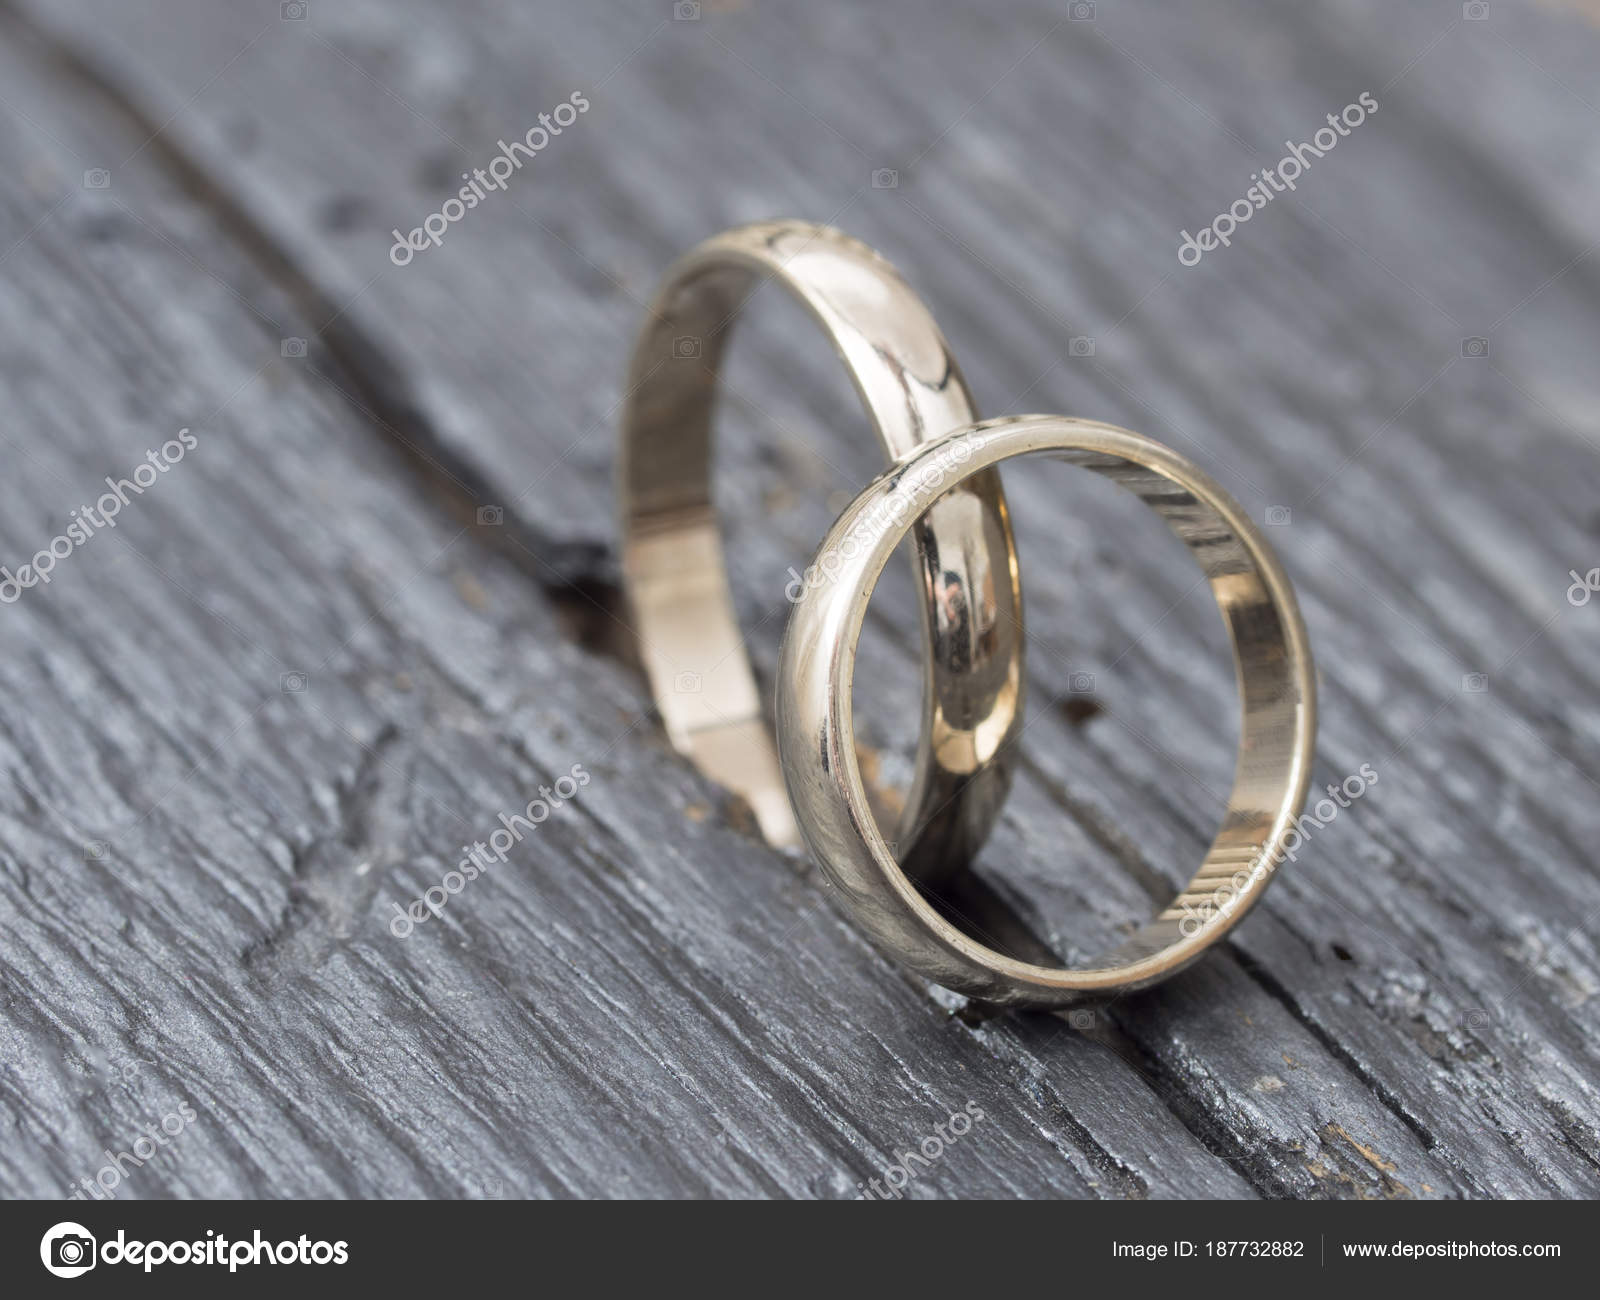 rings wedding photo image d illustration stock golden two render